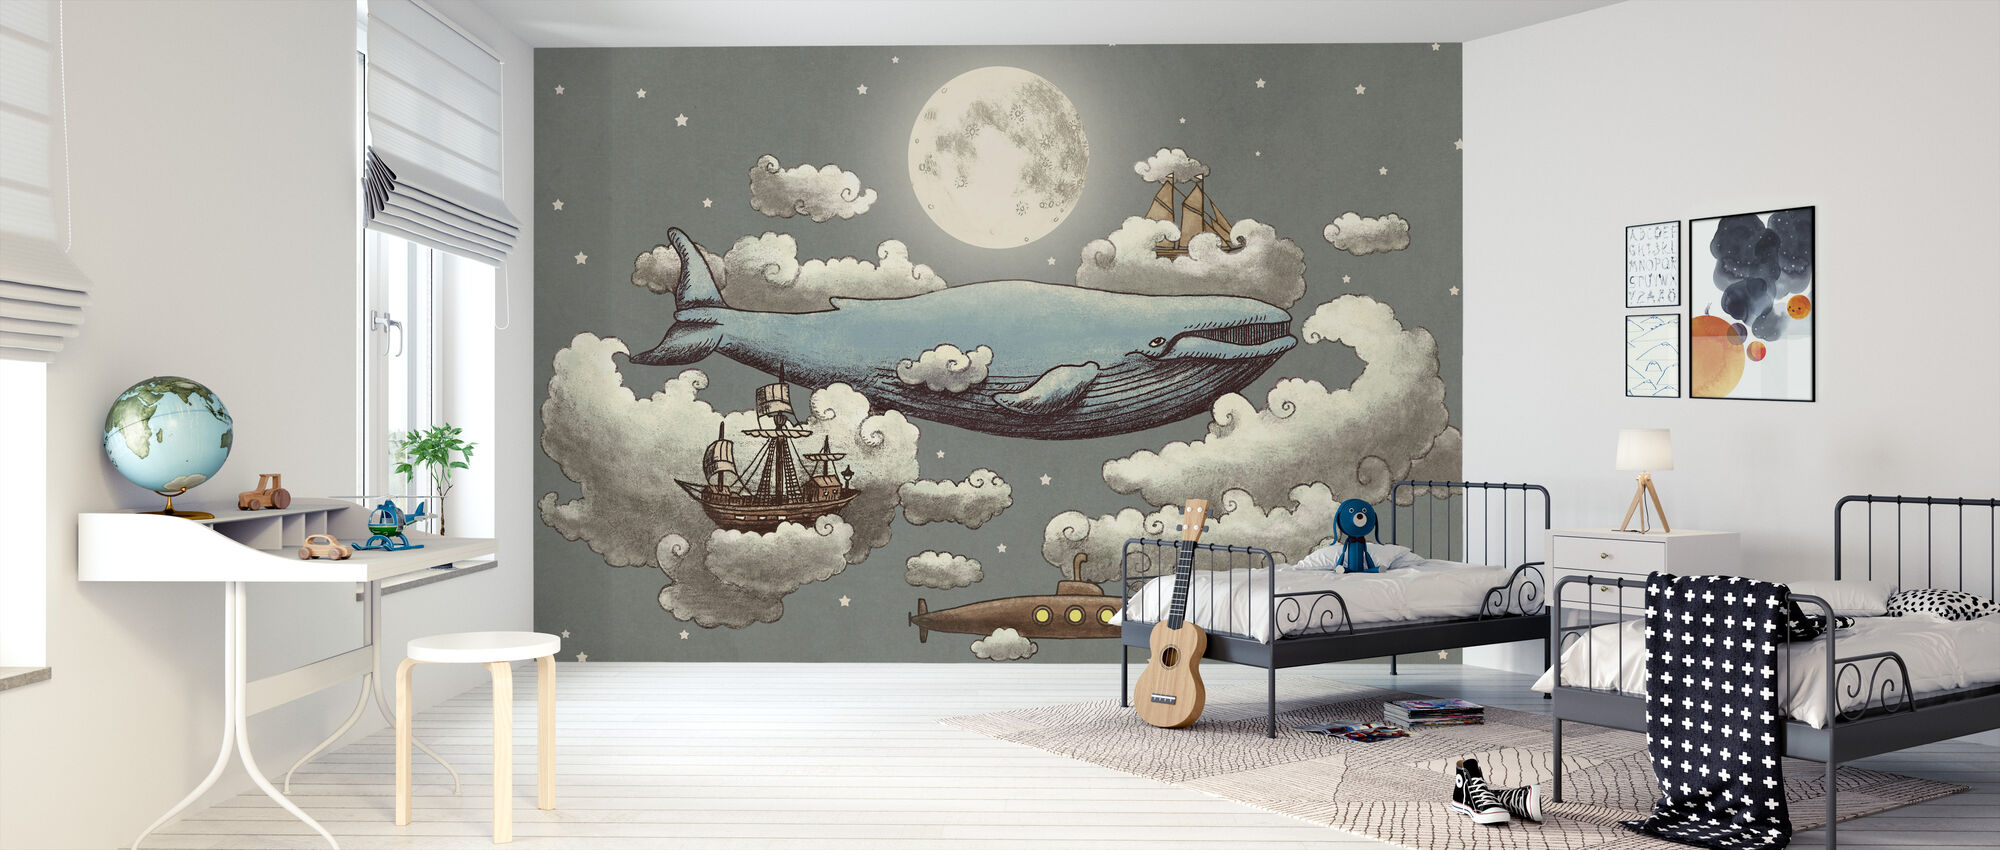 Ocean Meets Sky Original - Wallpaper - Kids Room